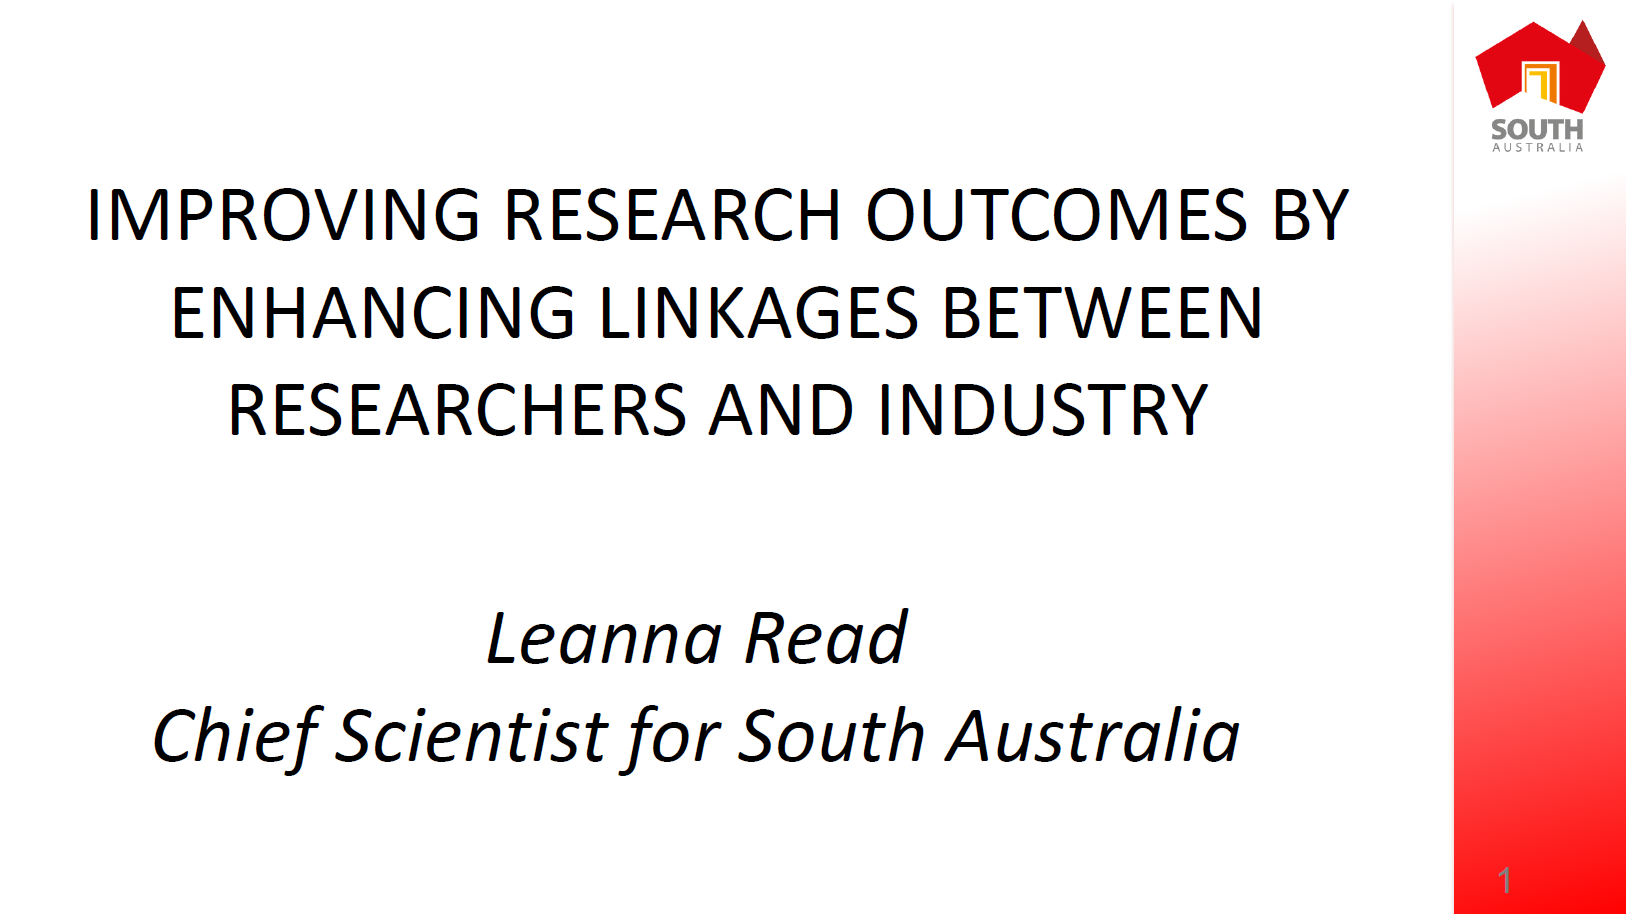 Improving Research Outcomes By Enhancing the Linkages between Researchers and Industry